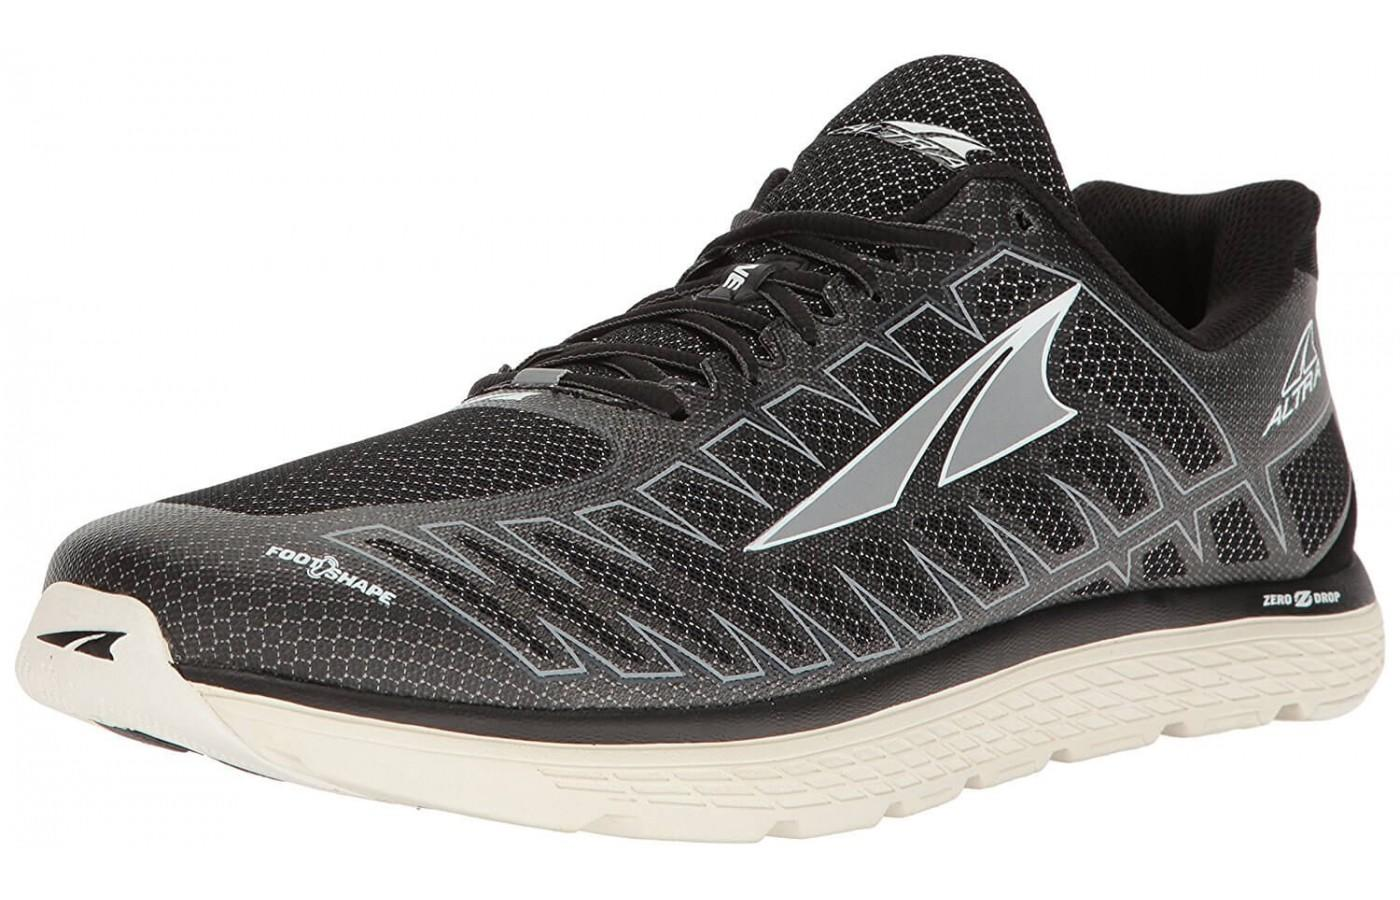 Stylish and lightweight, the Altra One V3 is a fan favorite.